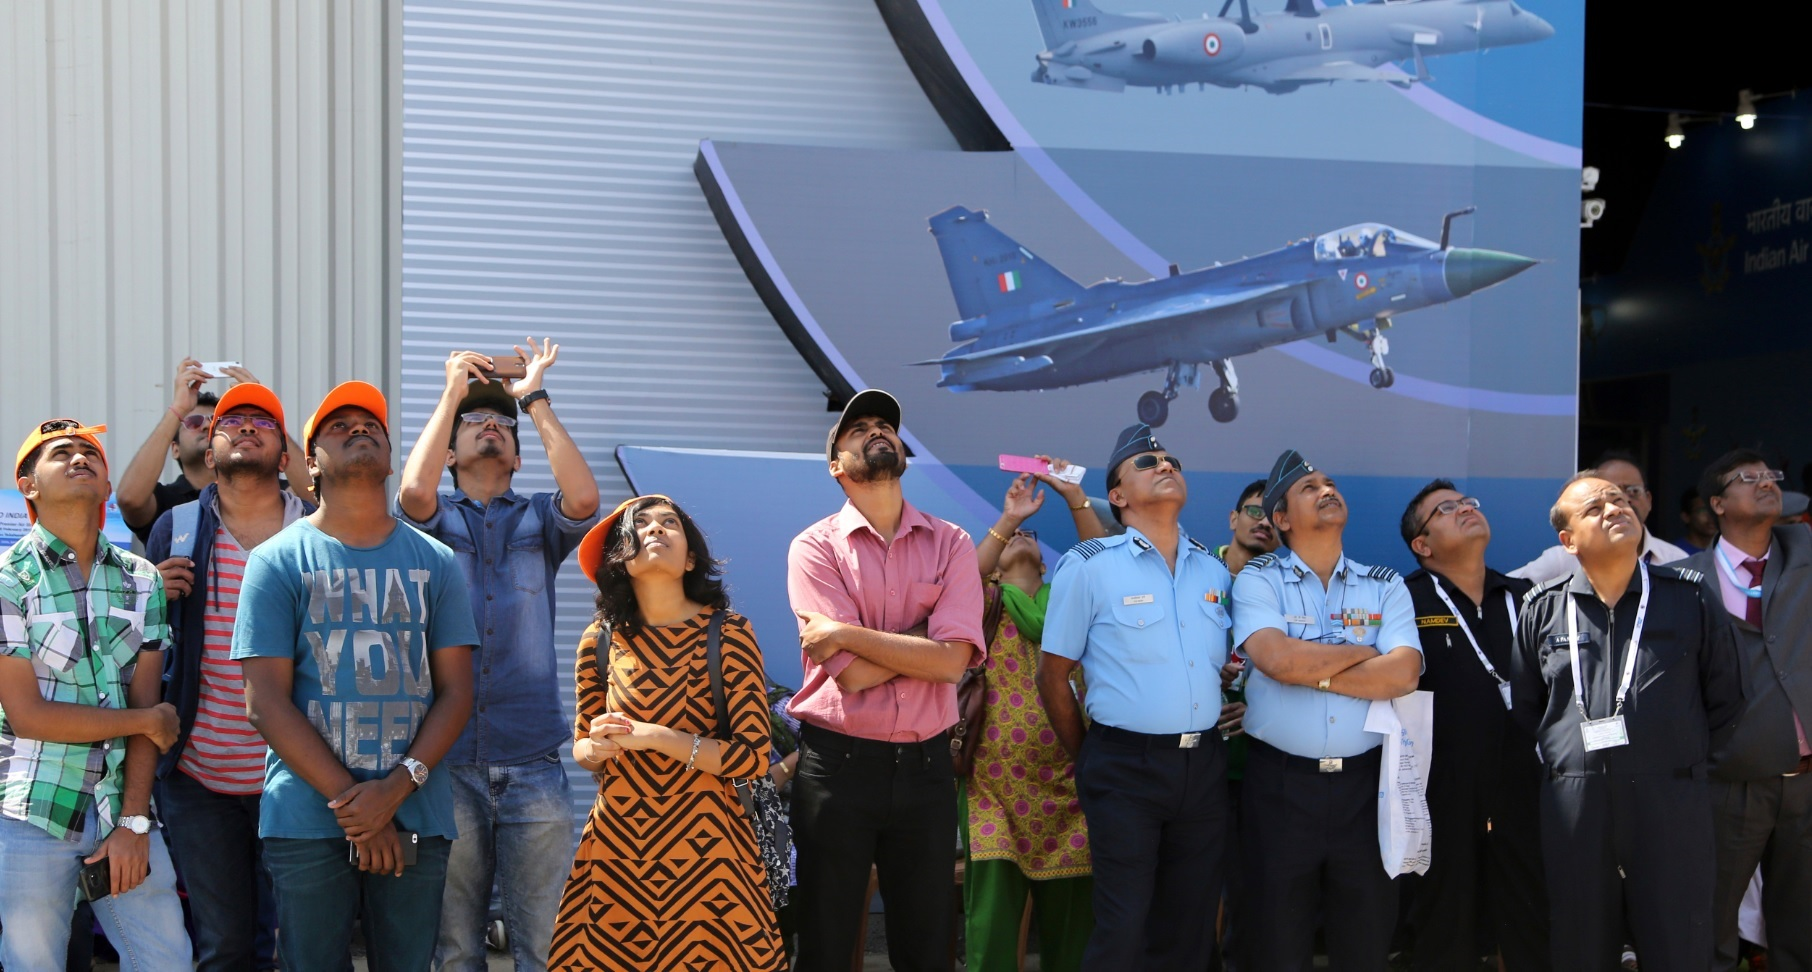 Visitors get a glimpse of aircraft at Aero India 2017 near Bengaluru. Source: AP